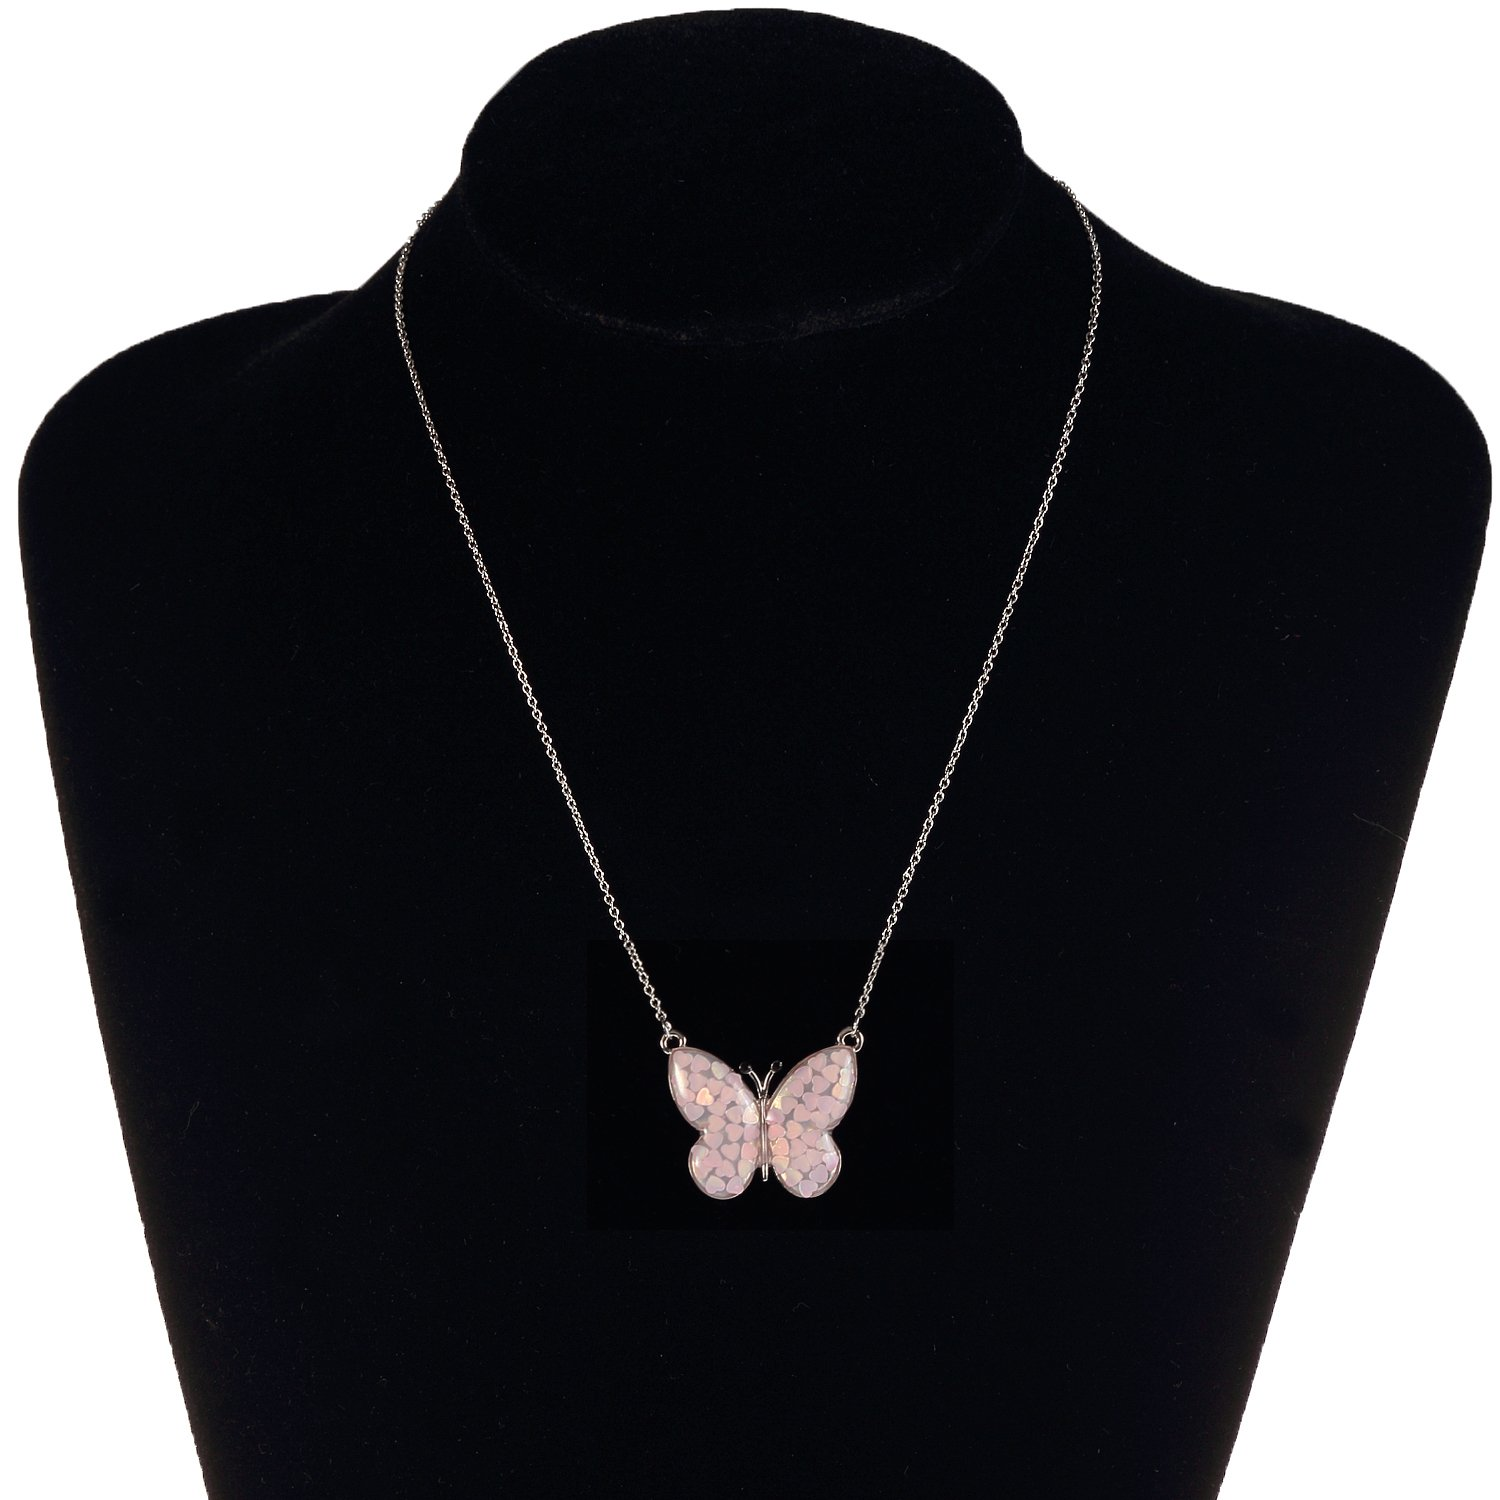 Lemonage Butterfly Necklaces for Girls Kids with Stunning Alloy Pendant Necklace, Children 3+ (Pink) by Lemonage (Image #2)